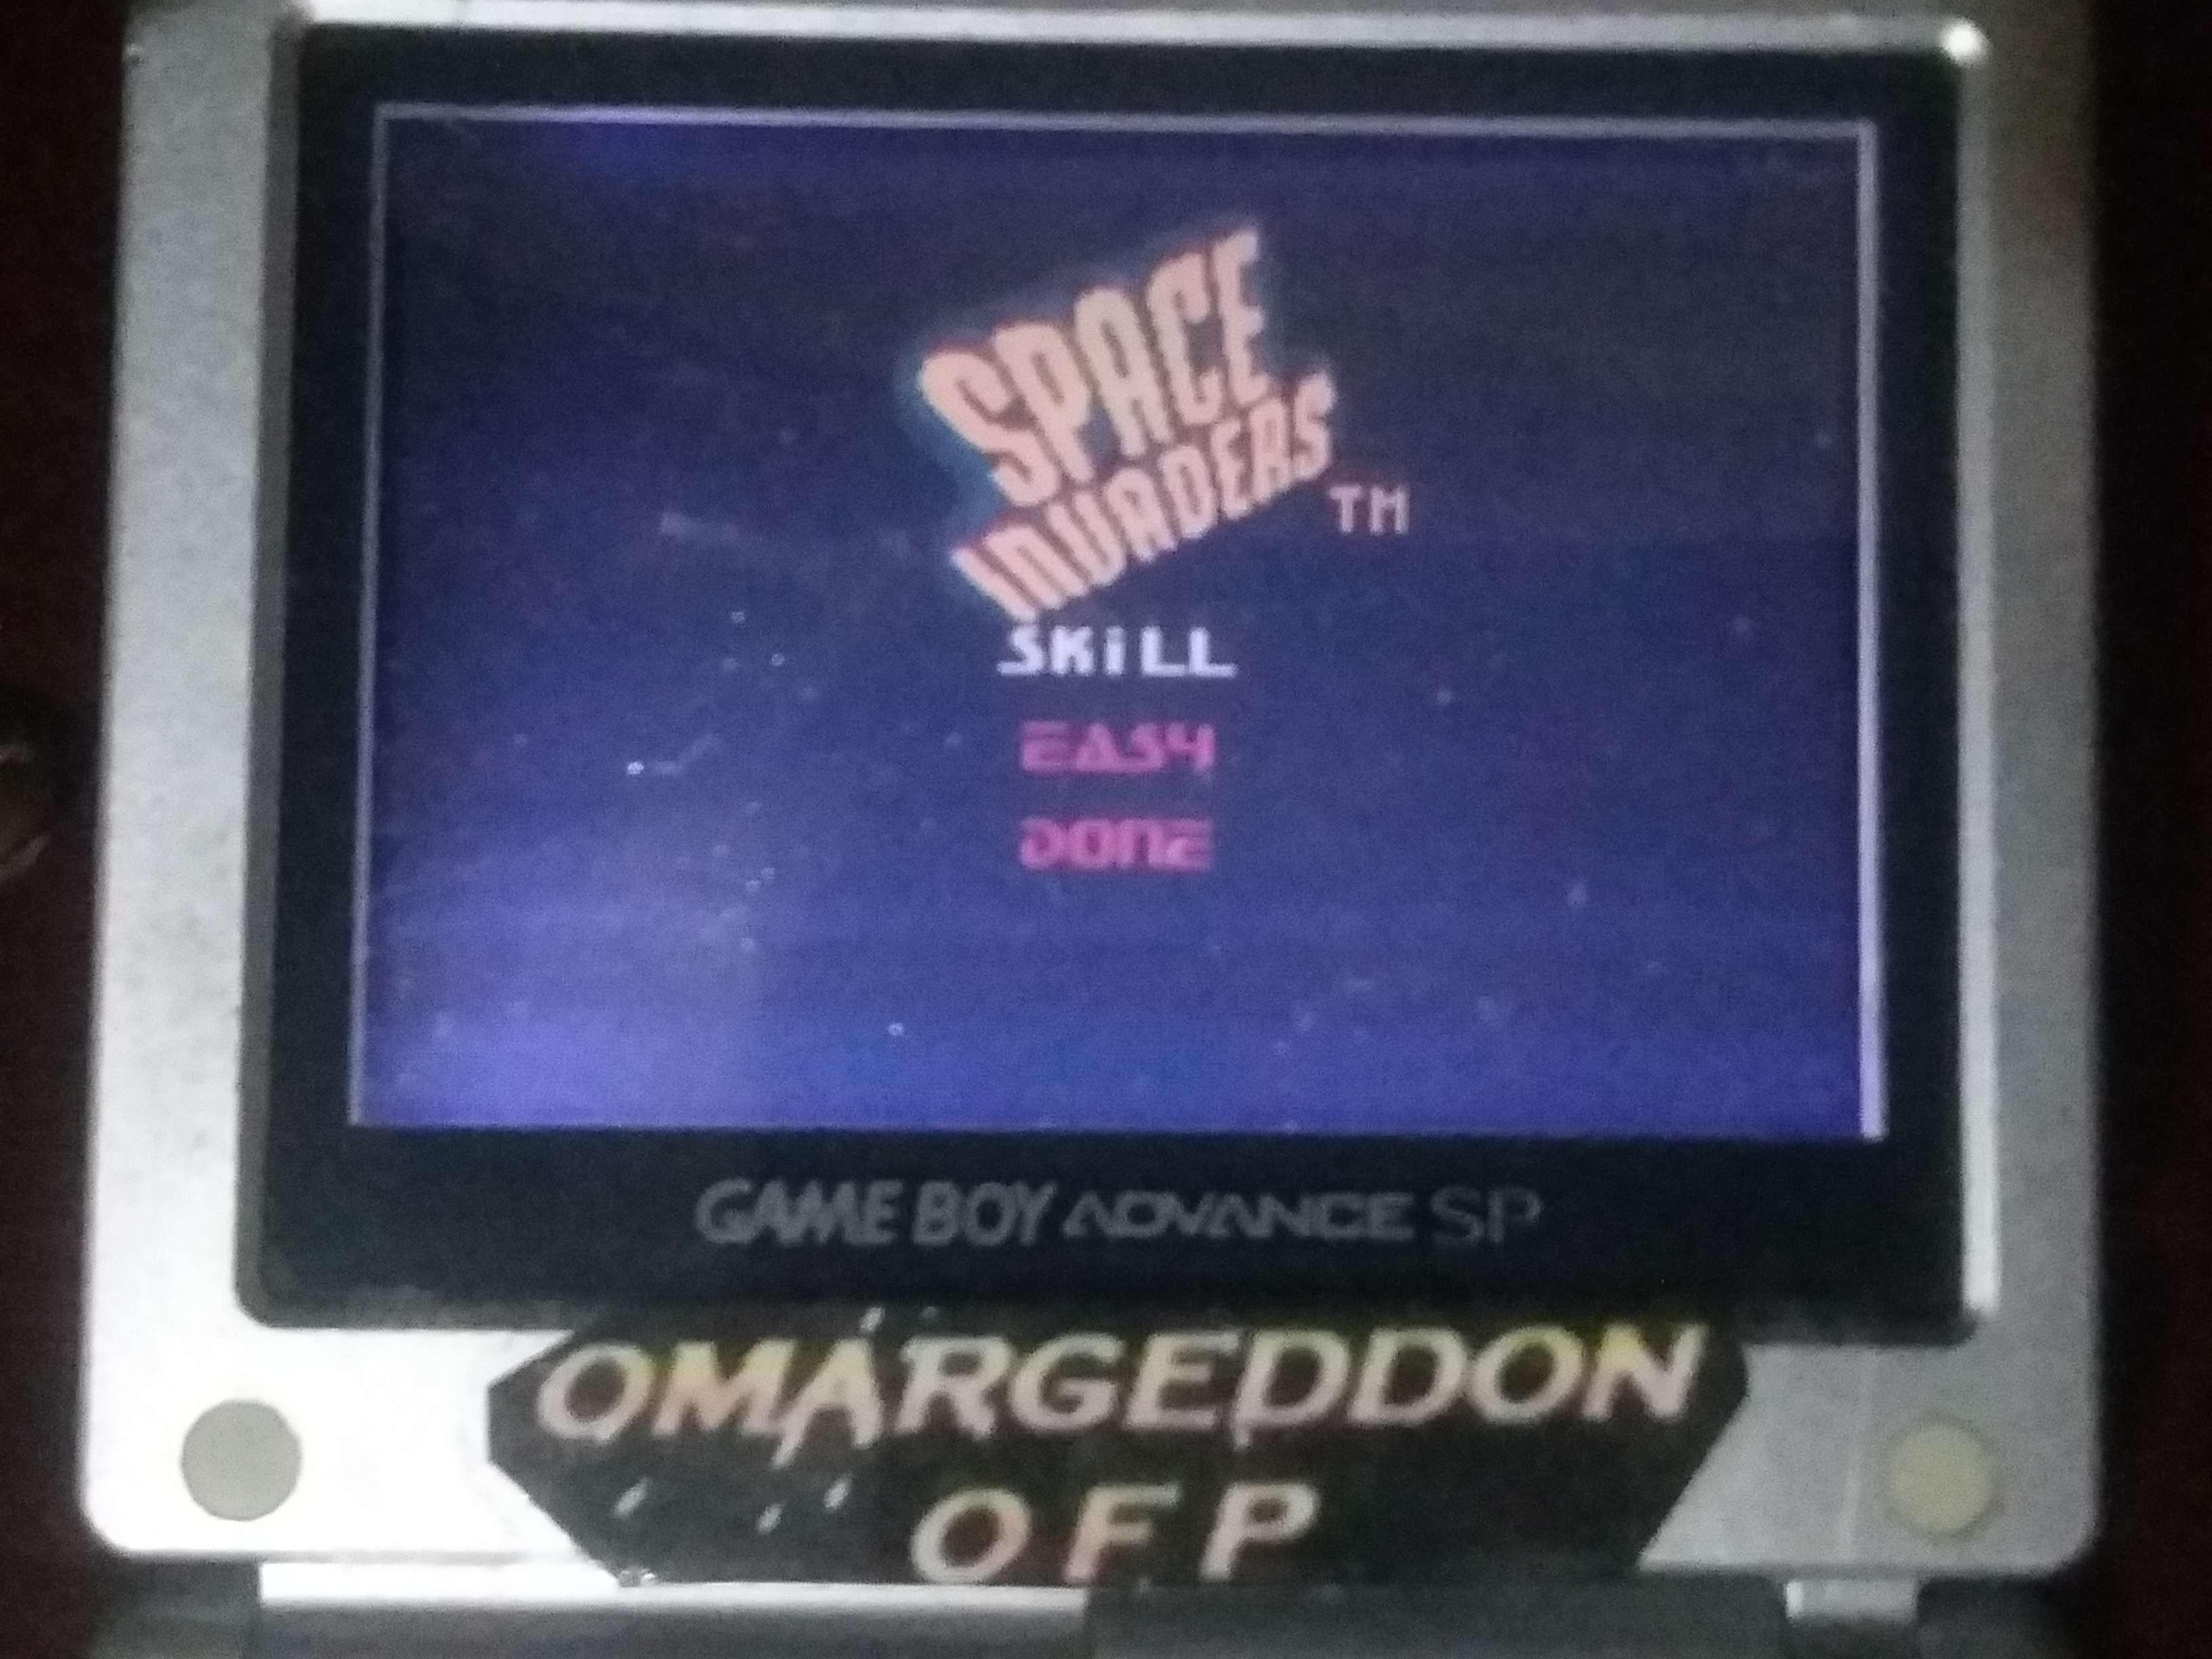 omargeddon: Space Invaders [Easy] (Game Boy Color) 6,863 points on 2018-02-28 19:36:09